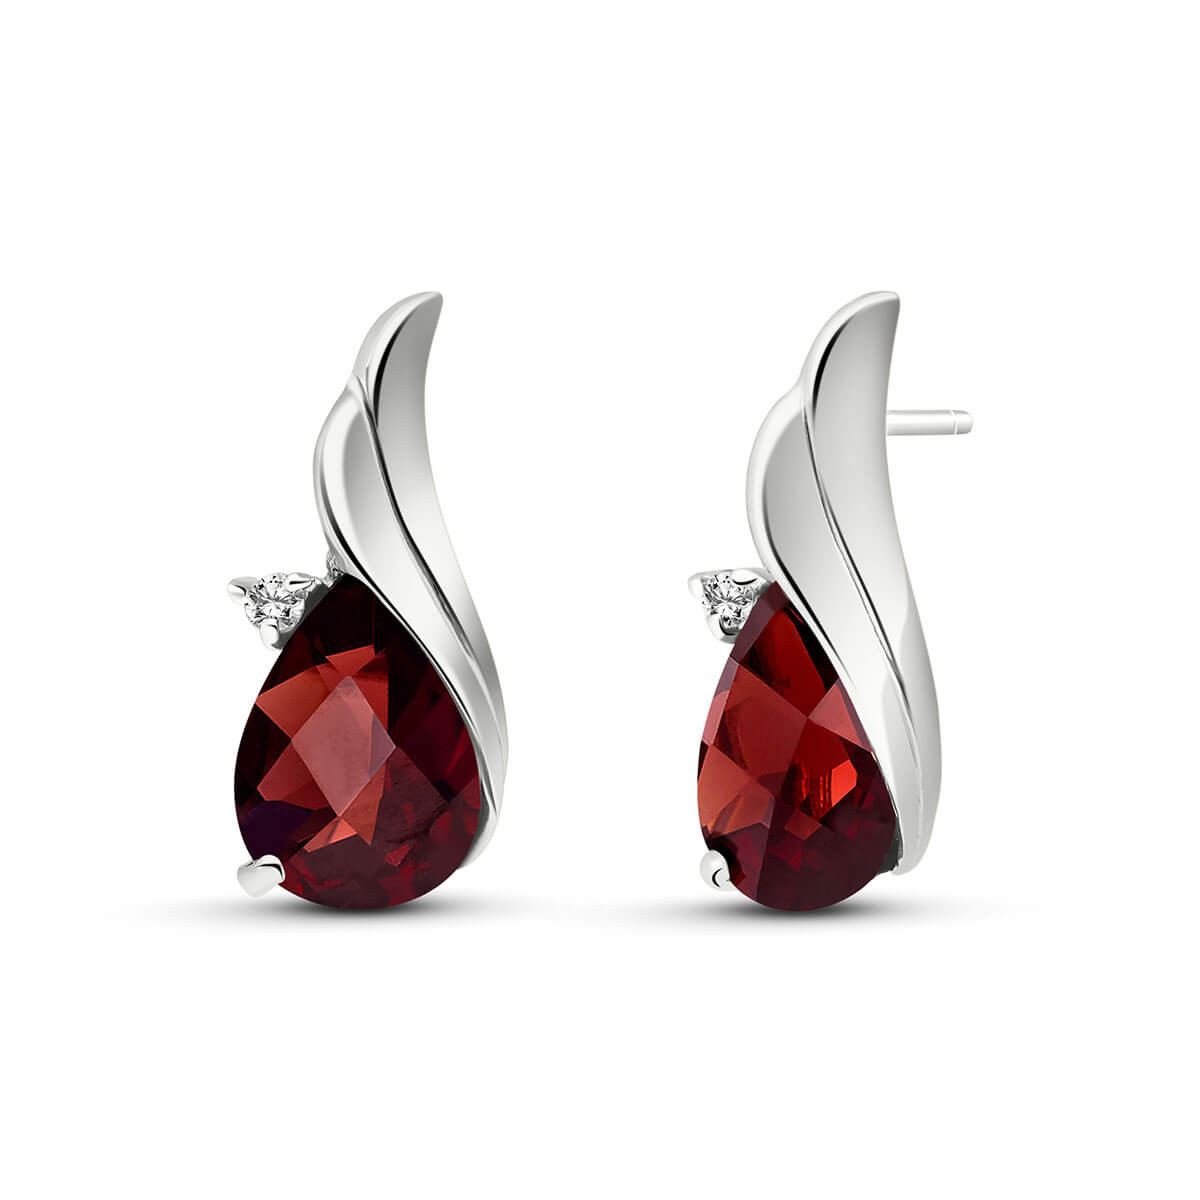 Garnet Stud Earrings 4.06 ctw in 9ct White Gold